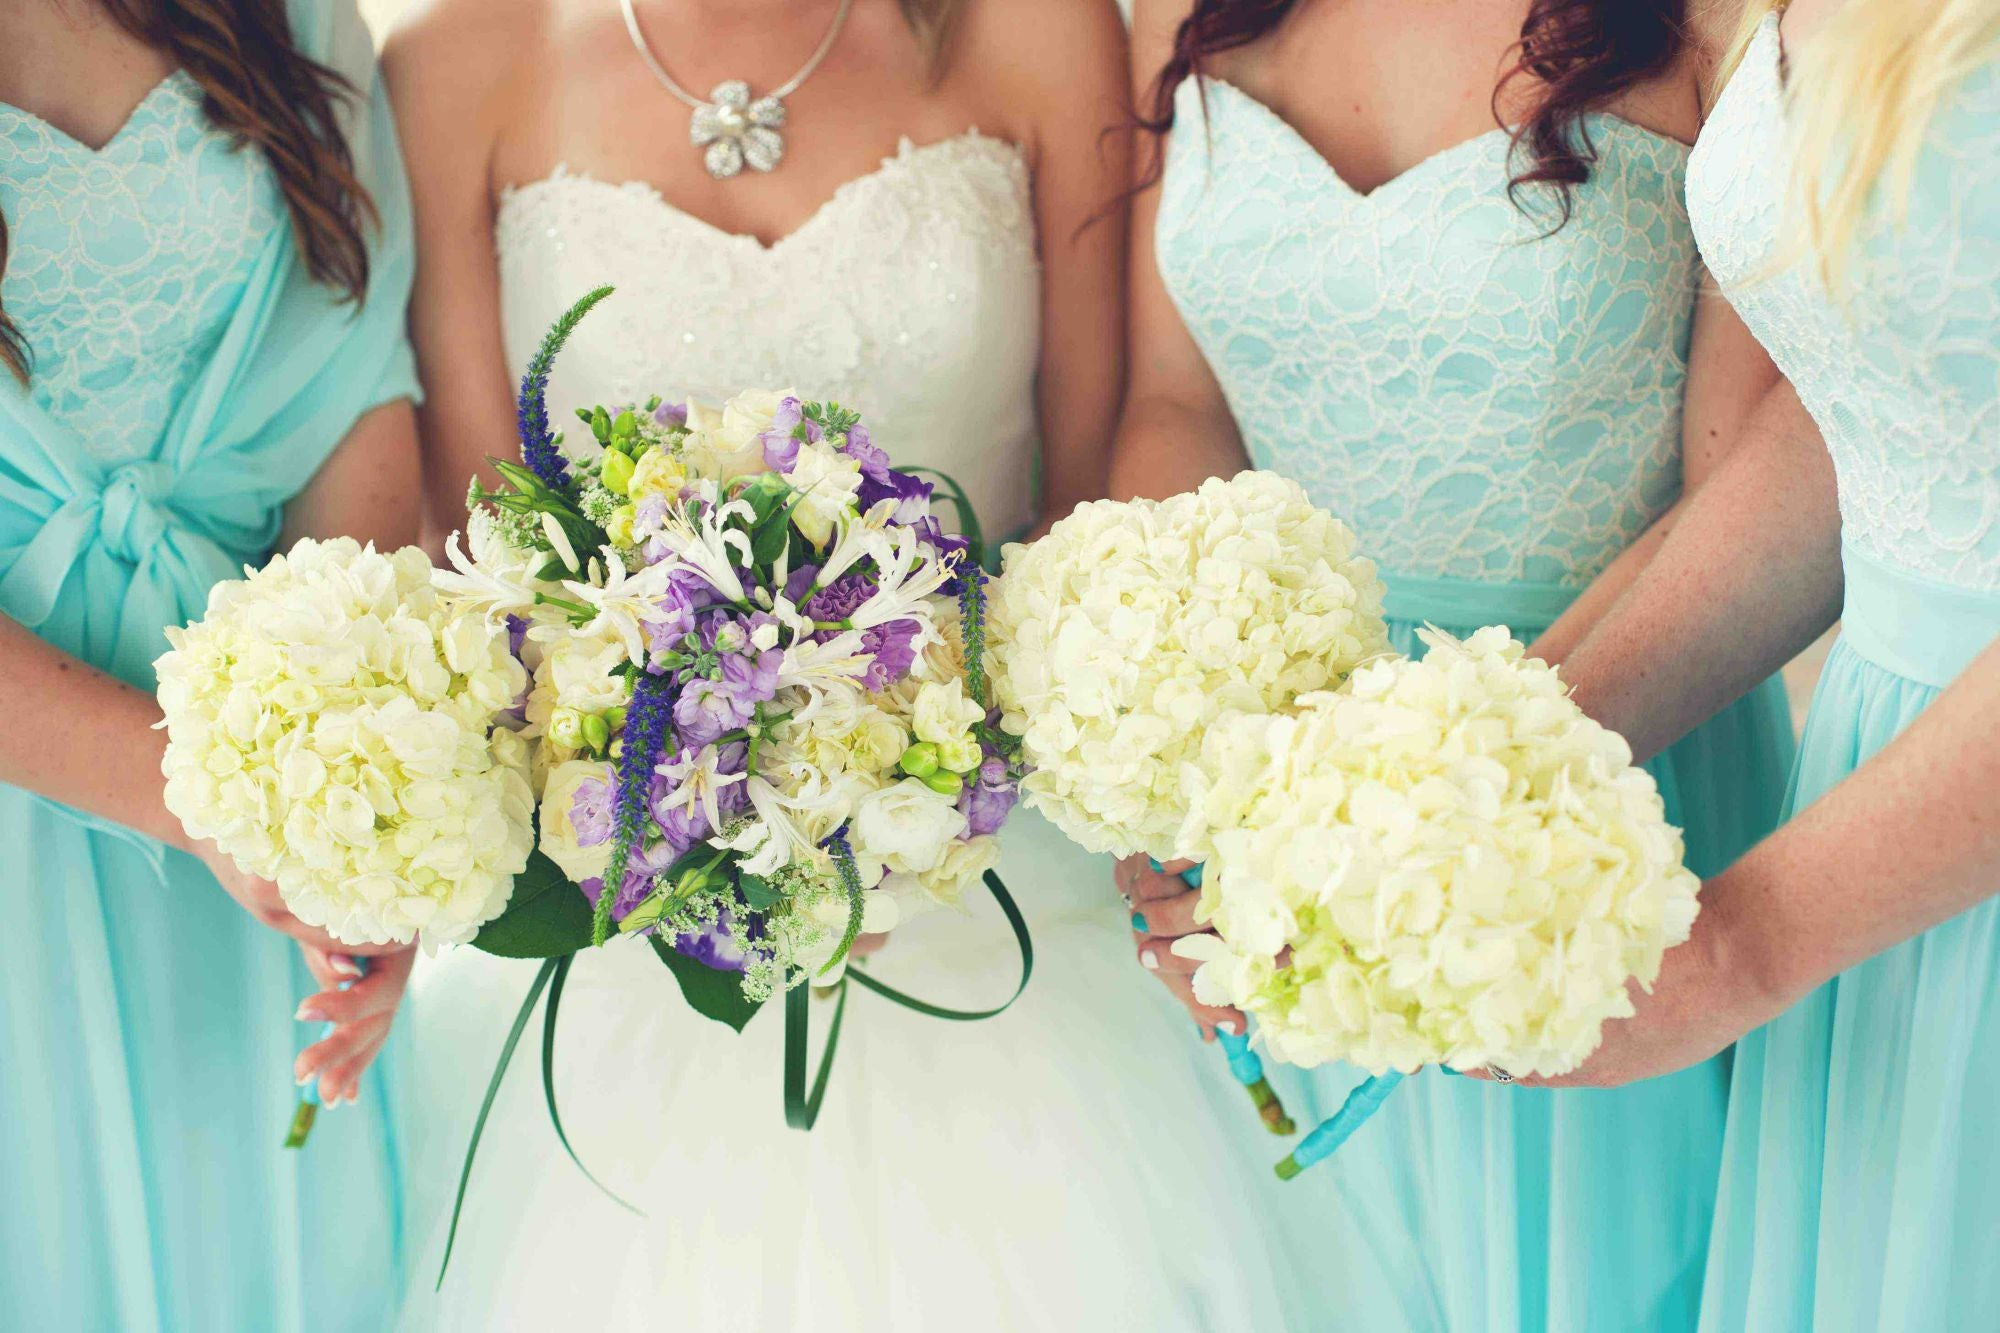 GIFTS YOUR BRIDESMAIDS WILL LOVE